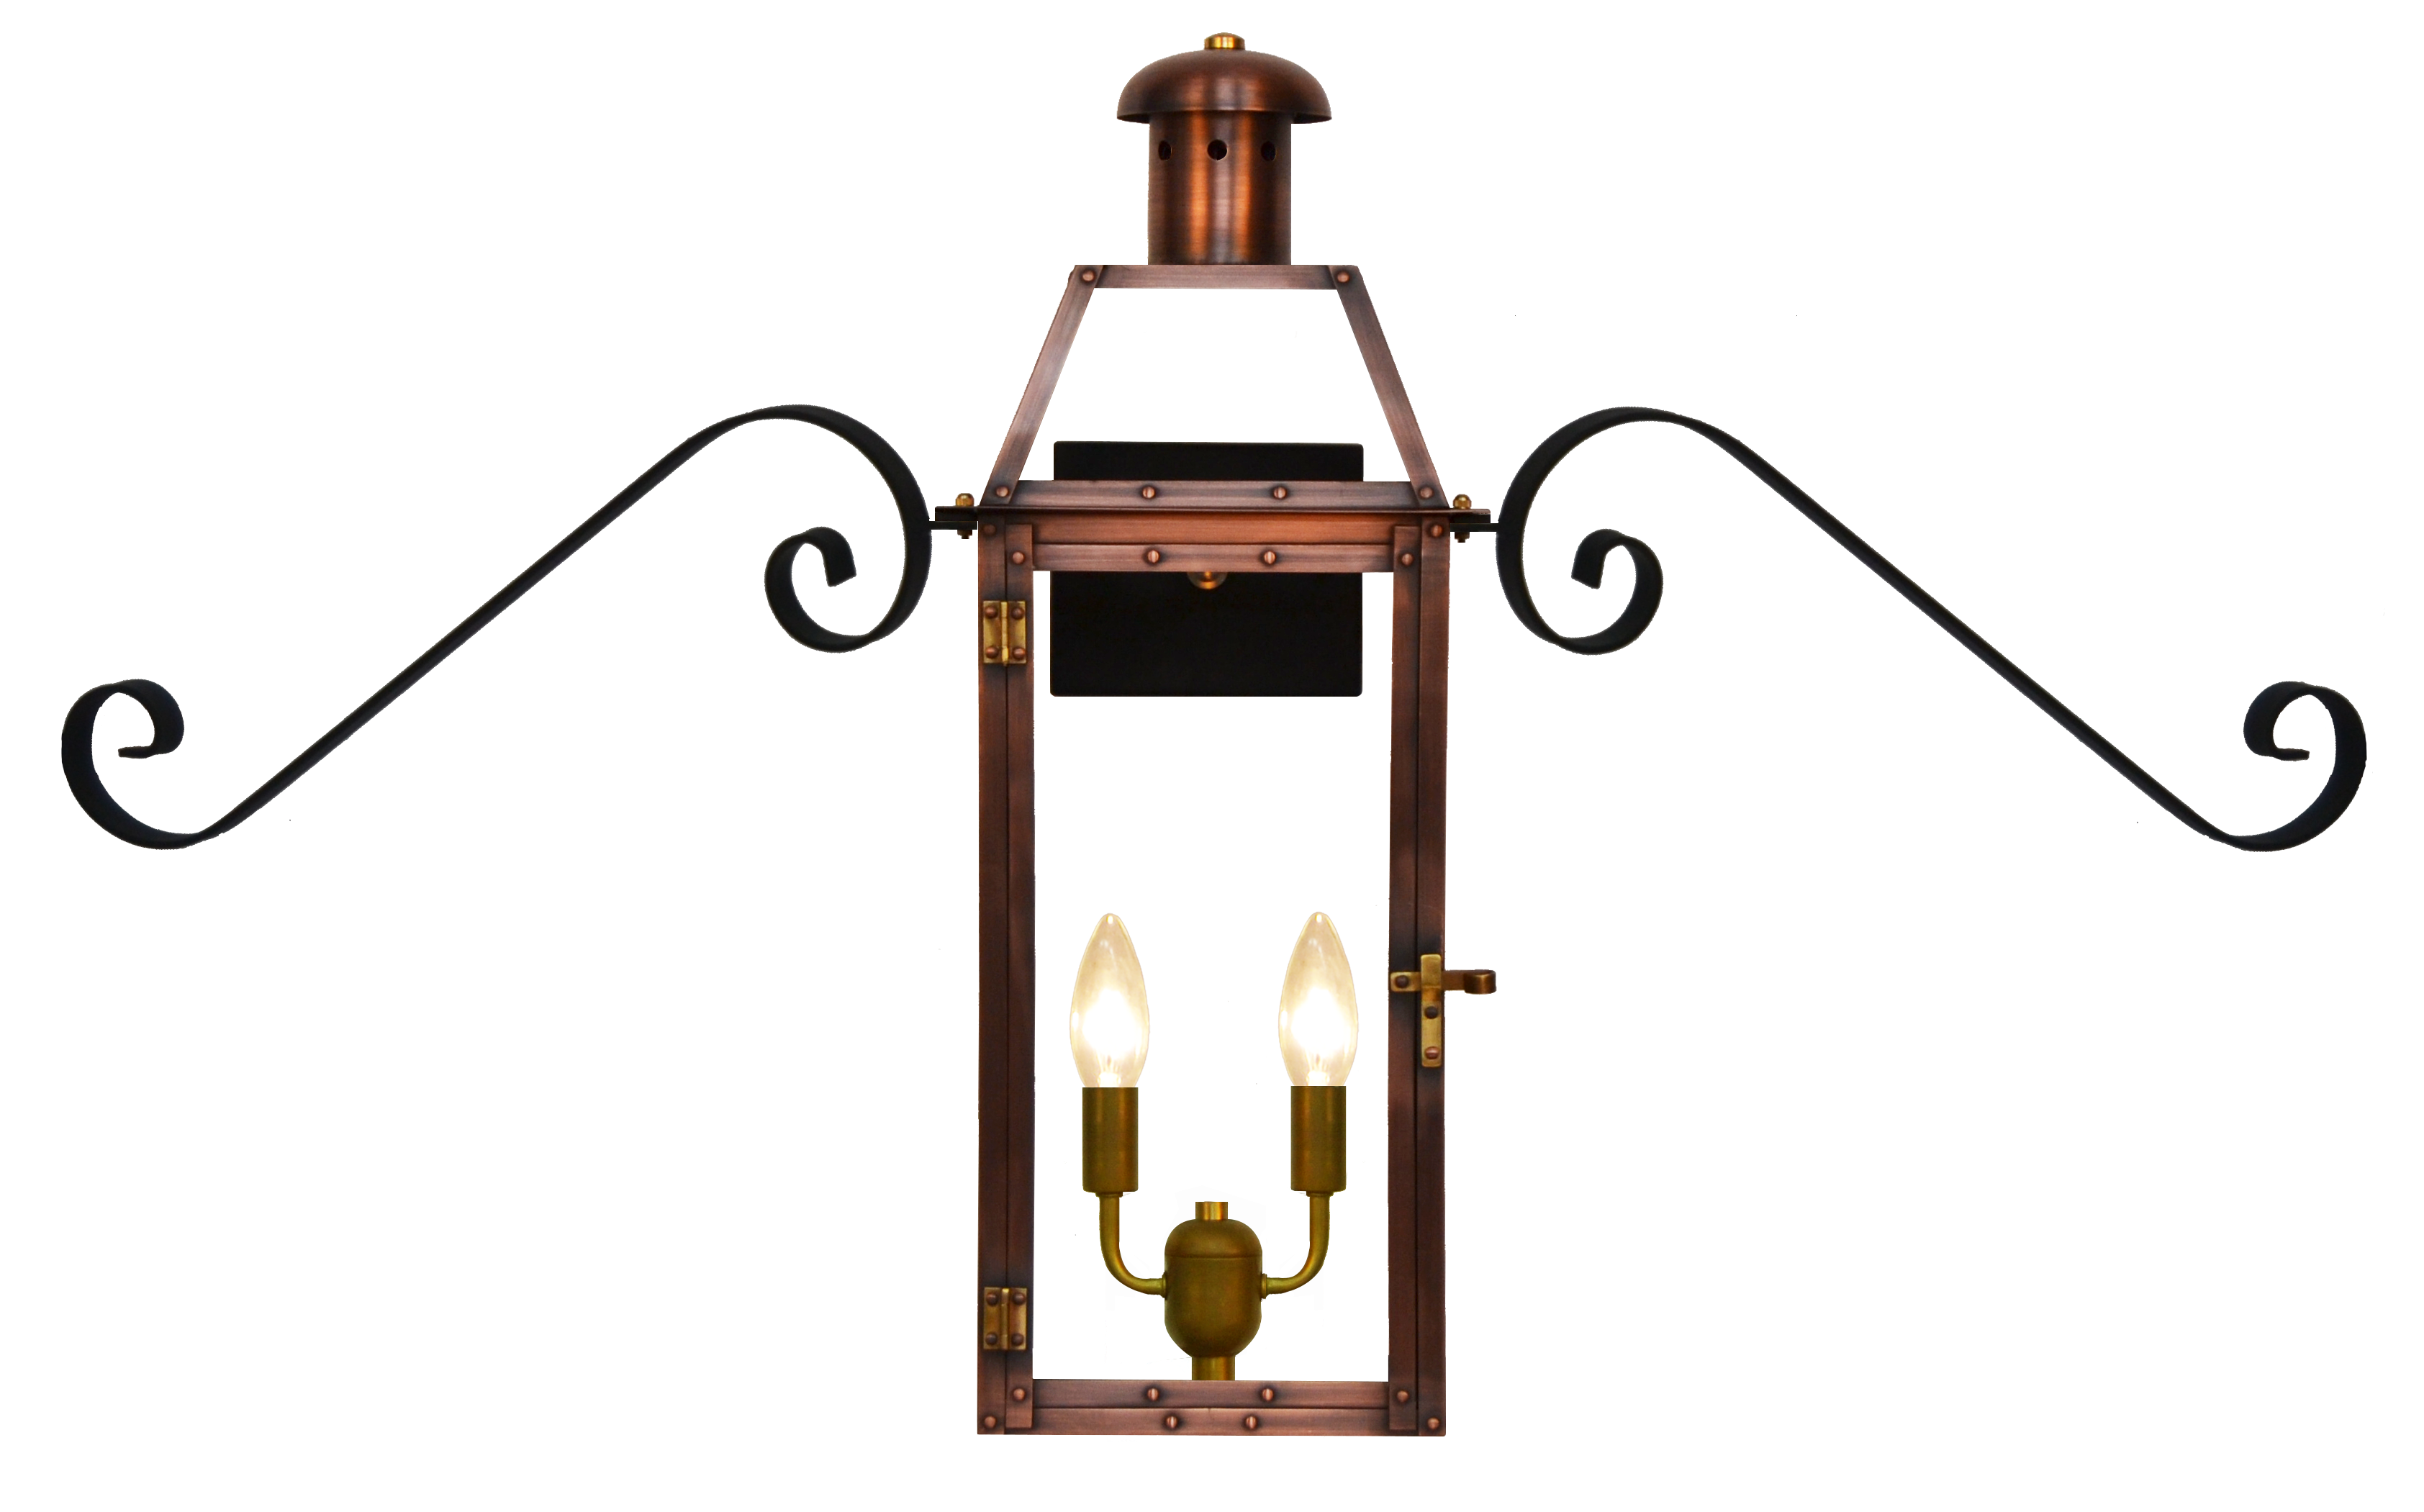 Lamp clipart wall lamp. Oakley gas or electric